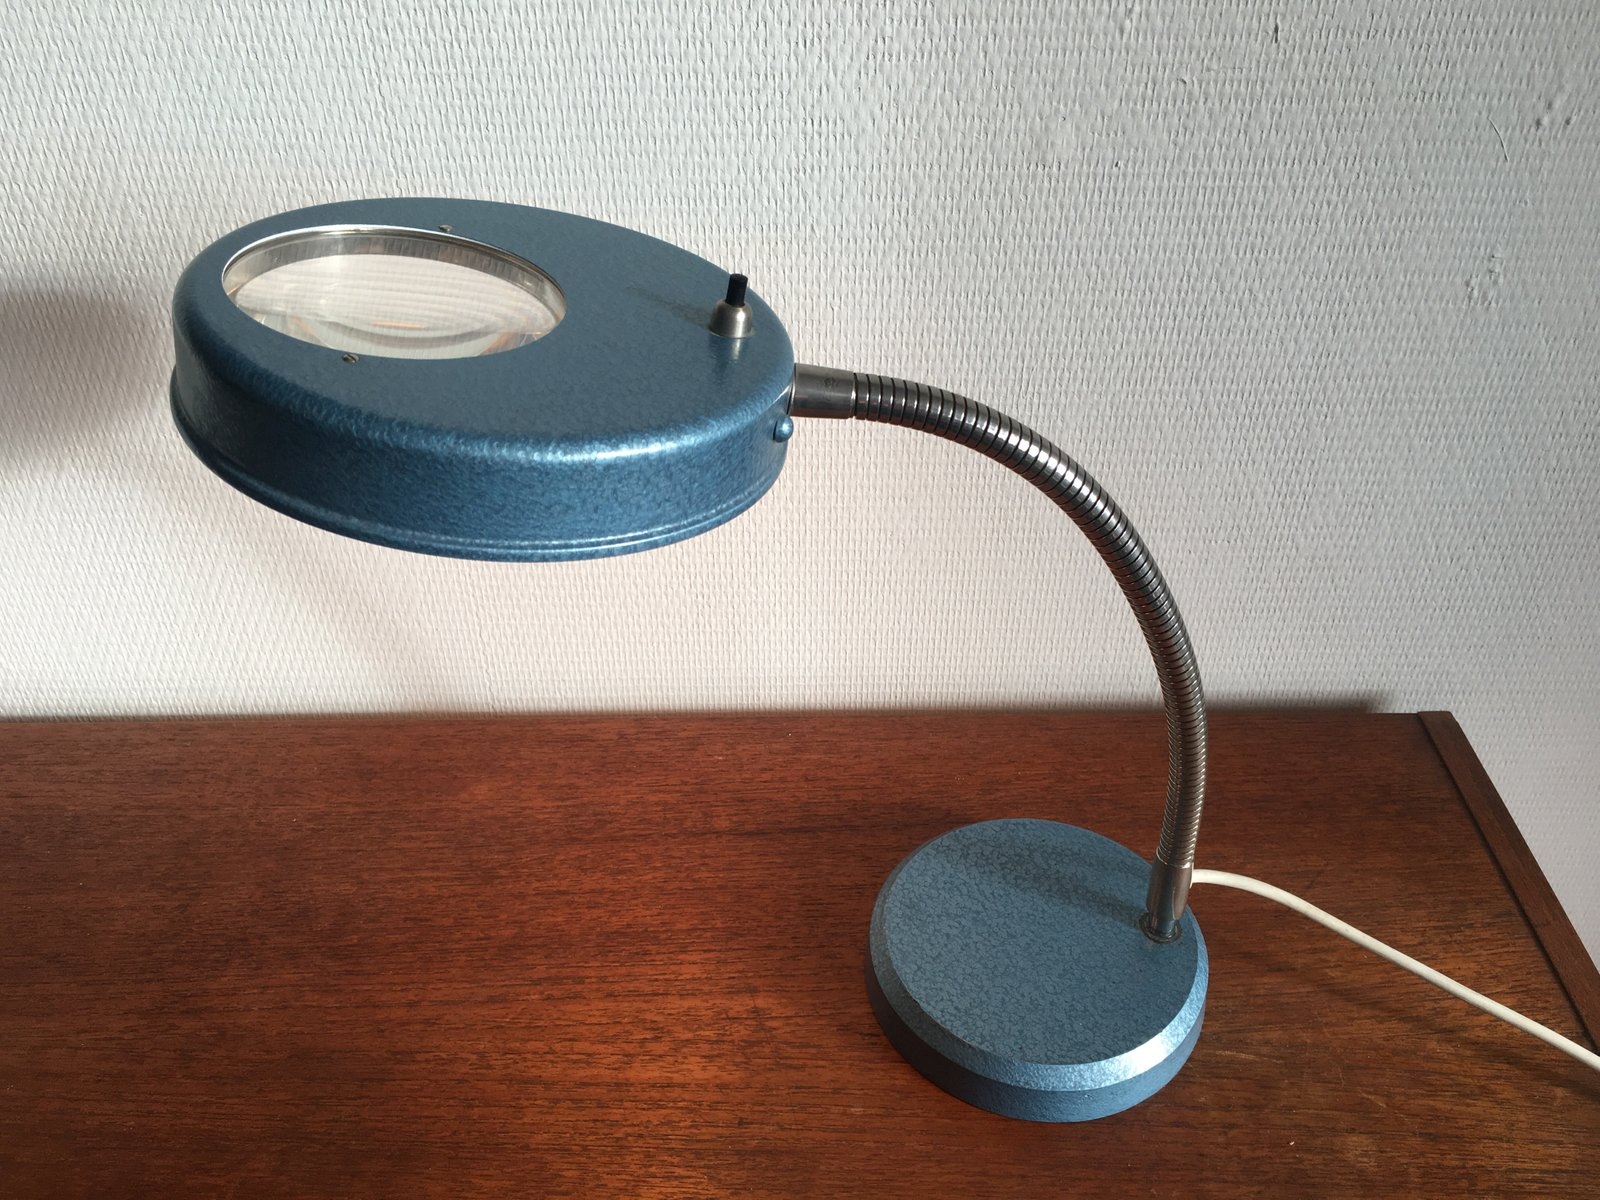 Vintage Industrial Desk Lamp With Magnifying Glass, 1950s For Sale At Pamono